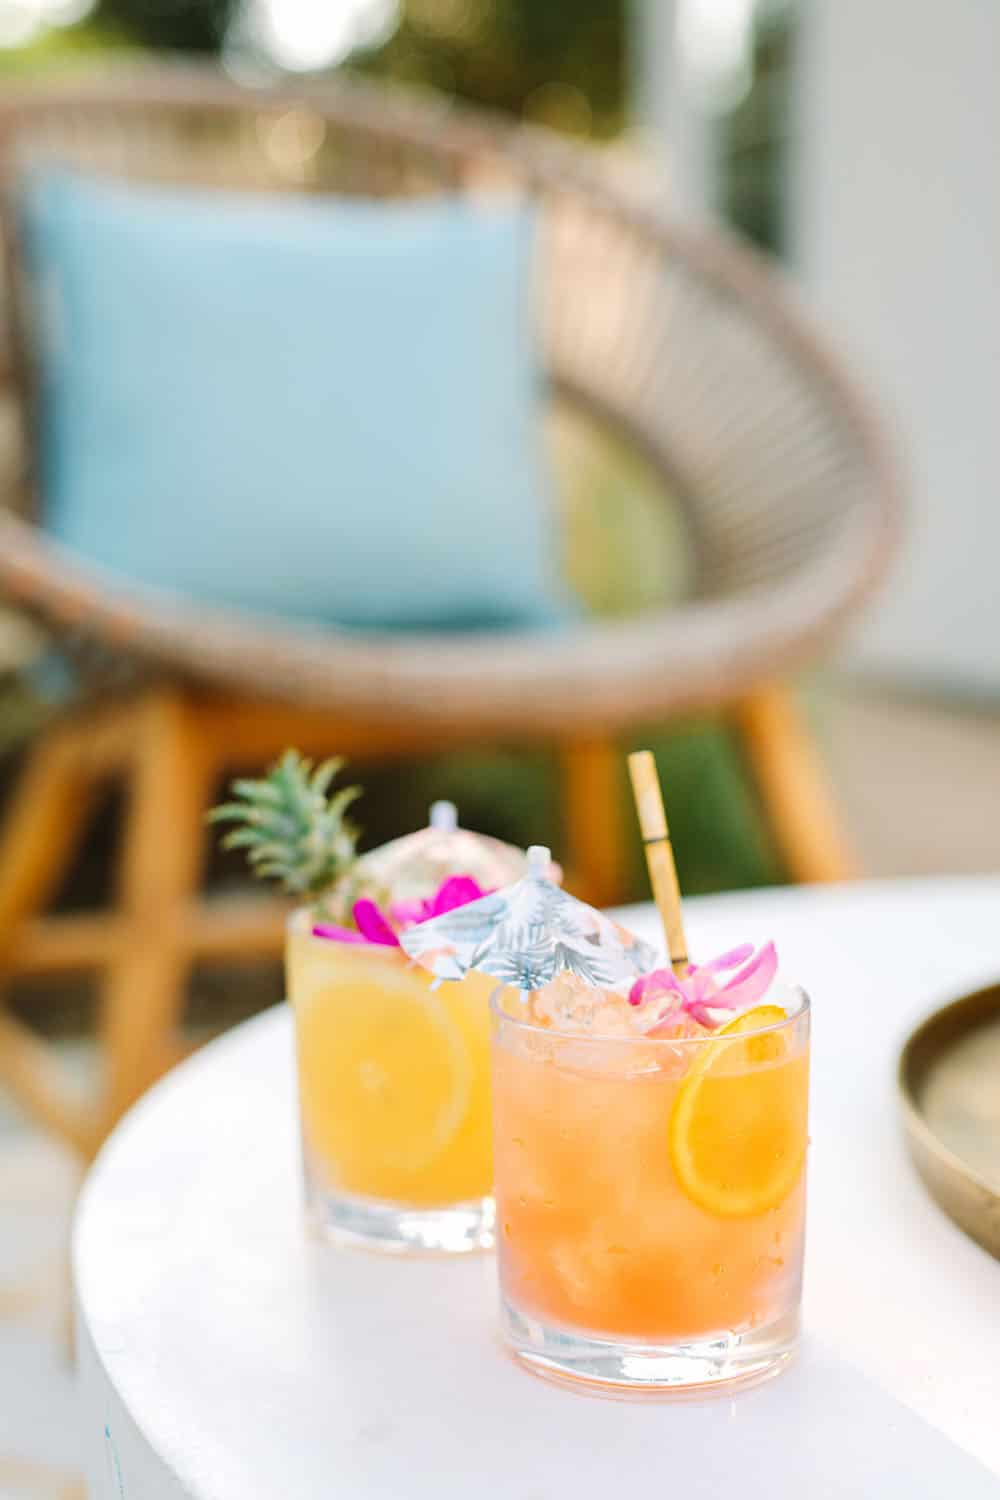 Tropical cocktails from Williams Sonoma for a tropical outdoor backyard party.